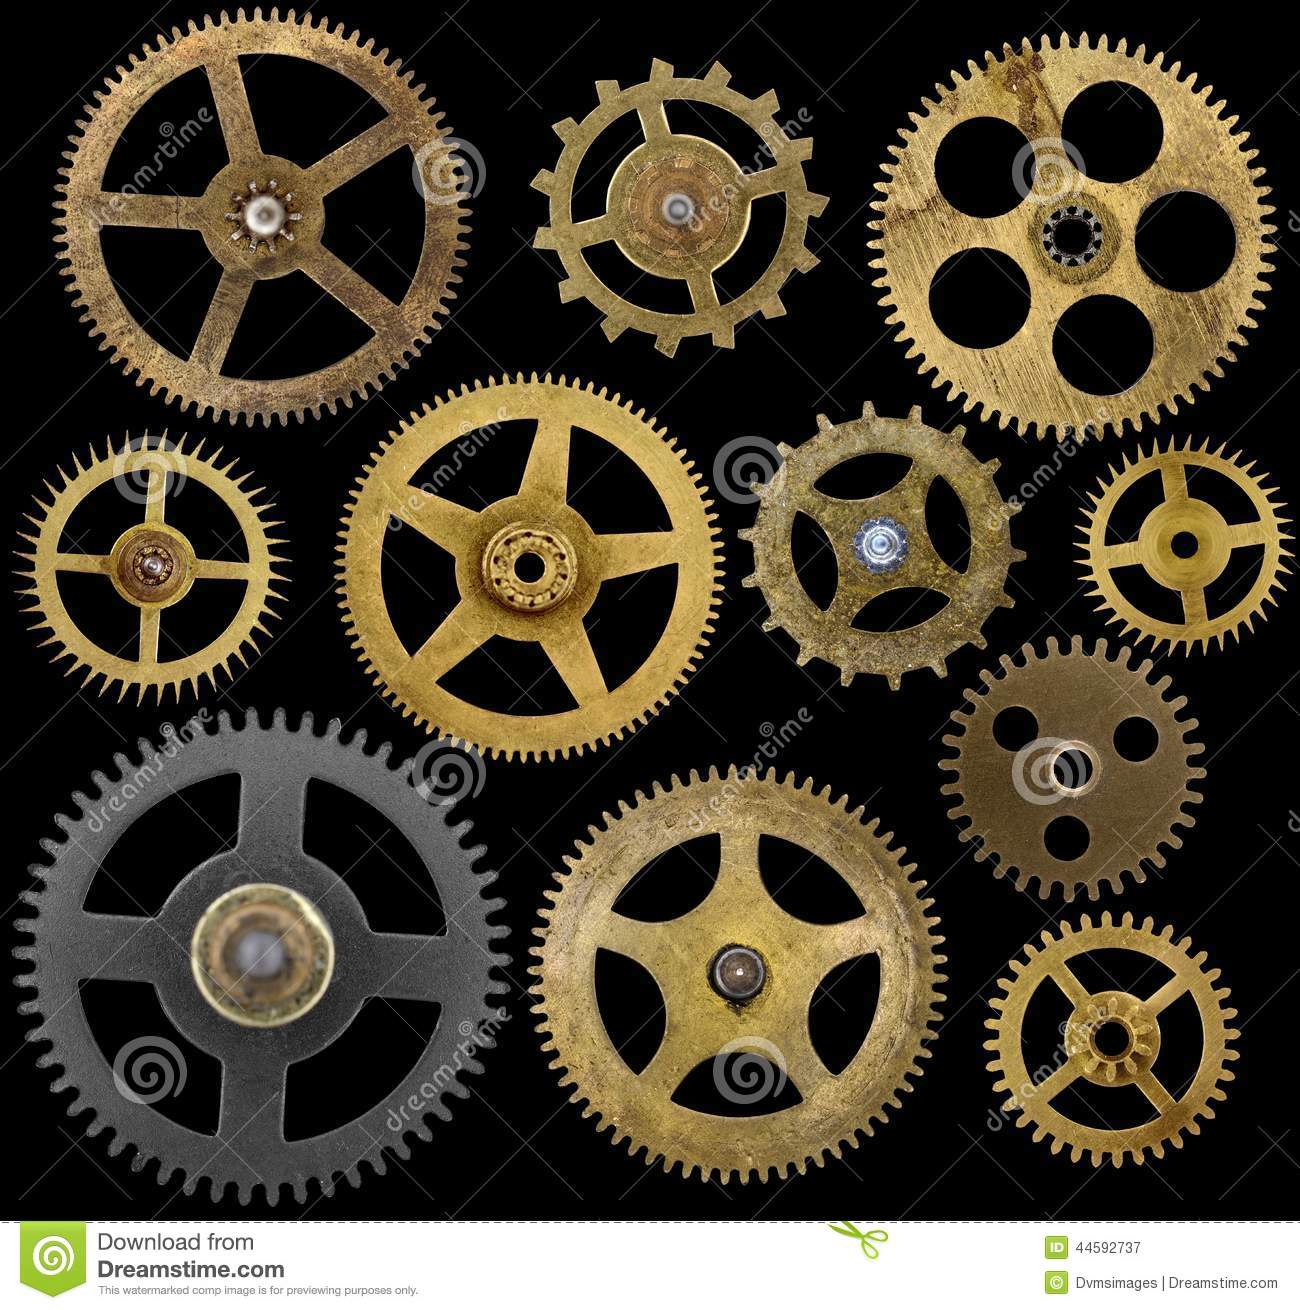 Clock Cogs Isolated On Black Stock Image - Image: 44592737